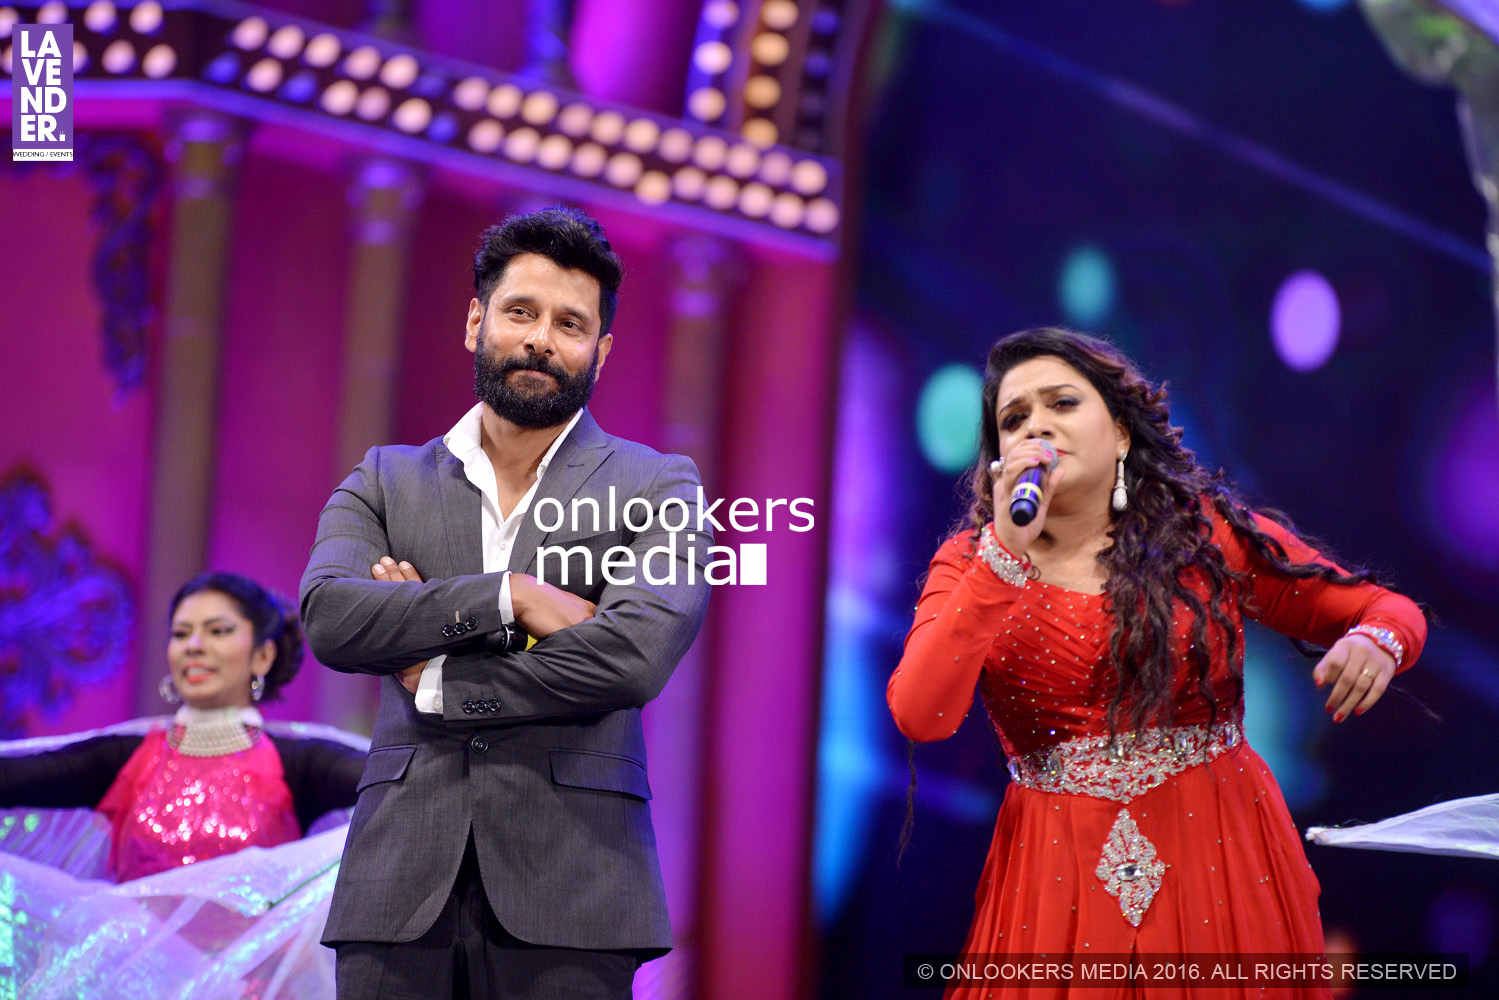 http://onlookersmedia.in/wp-content/uploads/2016/02/Vikram-at-Asianet-Film-Awards-2016-21.jpg